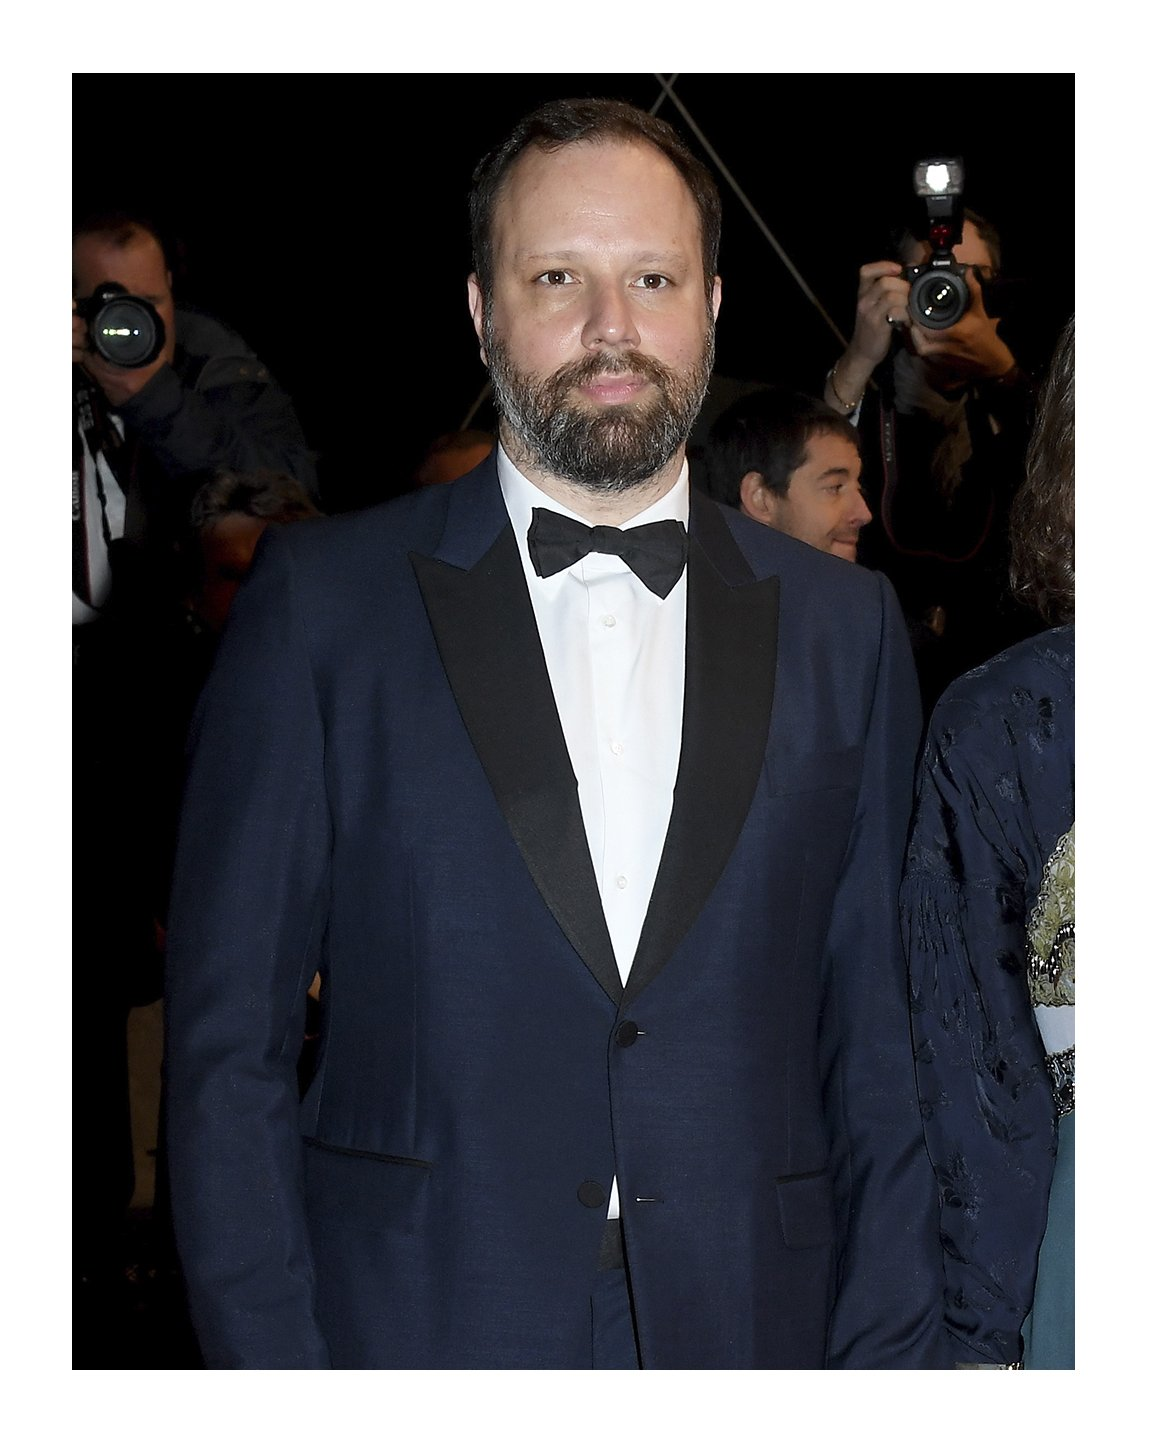 During the 72nd annual @Festival_Cannes, jury member #YorgosLanthimos wore a #Gucci Heritage tuxedo with black grosgrain contrast lapel, a covered placket evening shirt, grosgrain bowtie to the screening of 'The Whistlers (La Gomera)'.  #AlessandroMichele #Cannes2019 https://t.co/8UTNsVWAUU